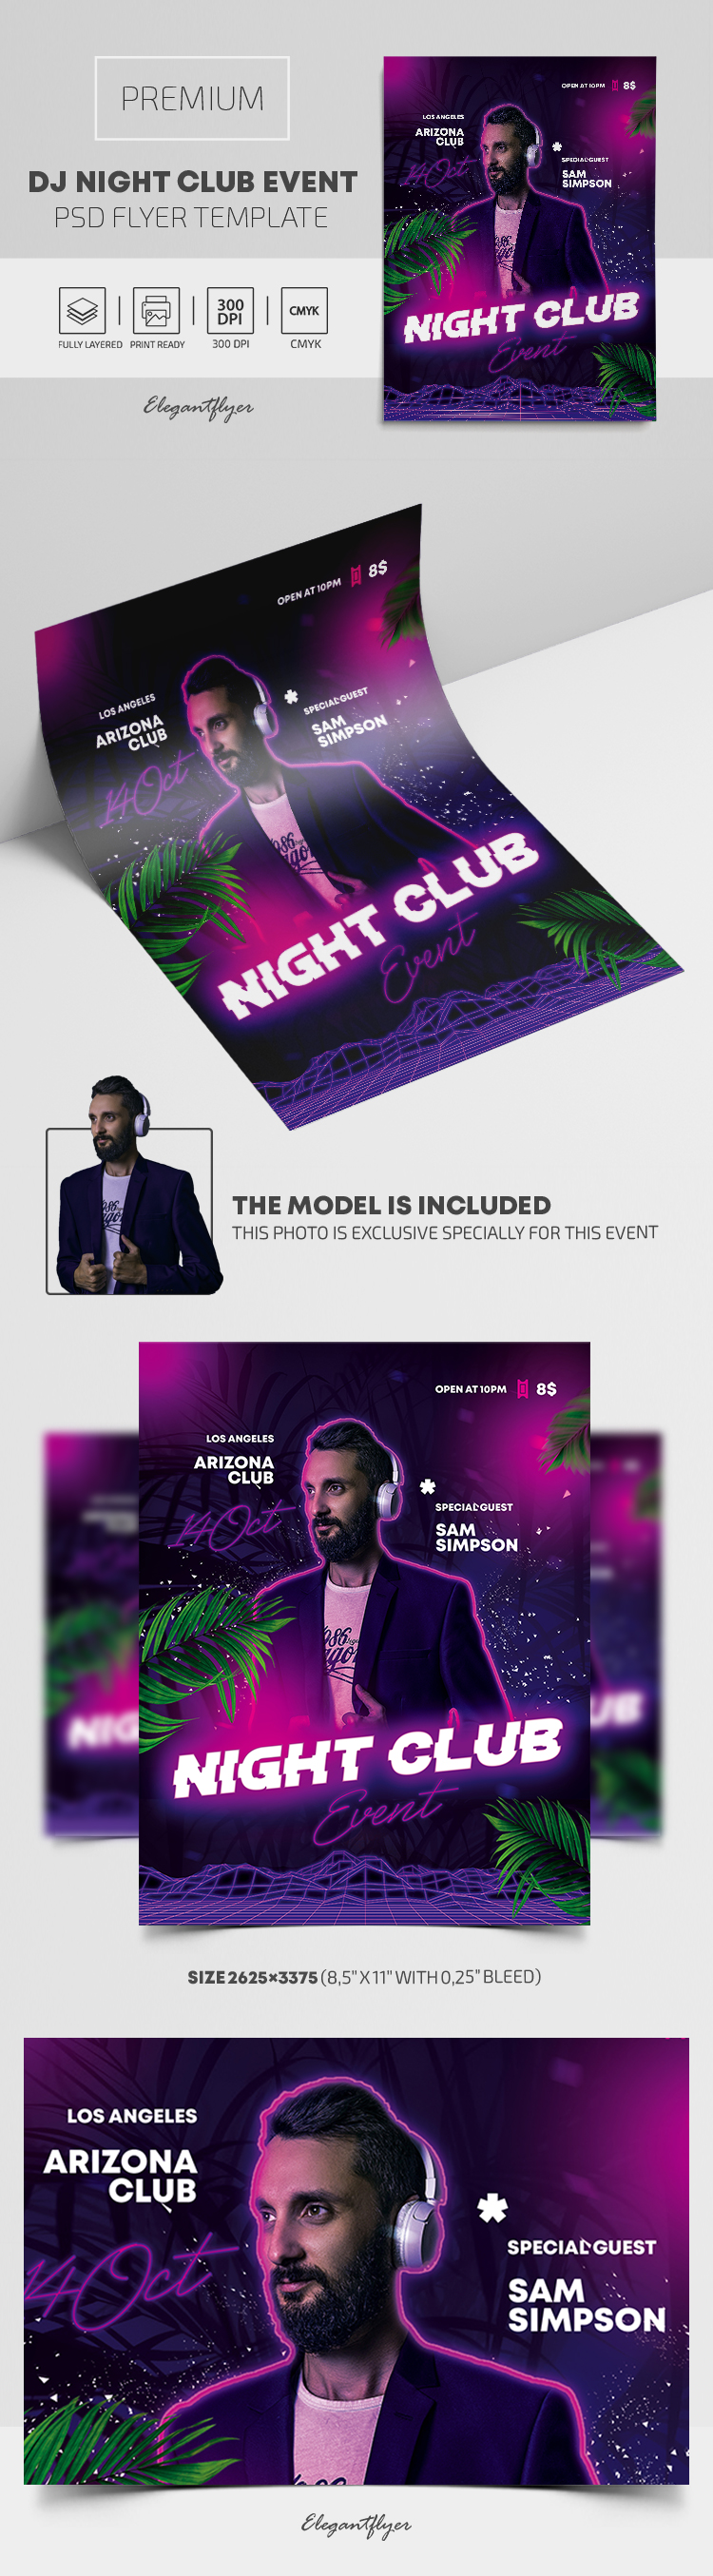 Dj Night Club Event – Premium PSD Flyer Template